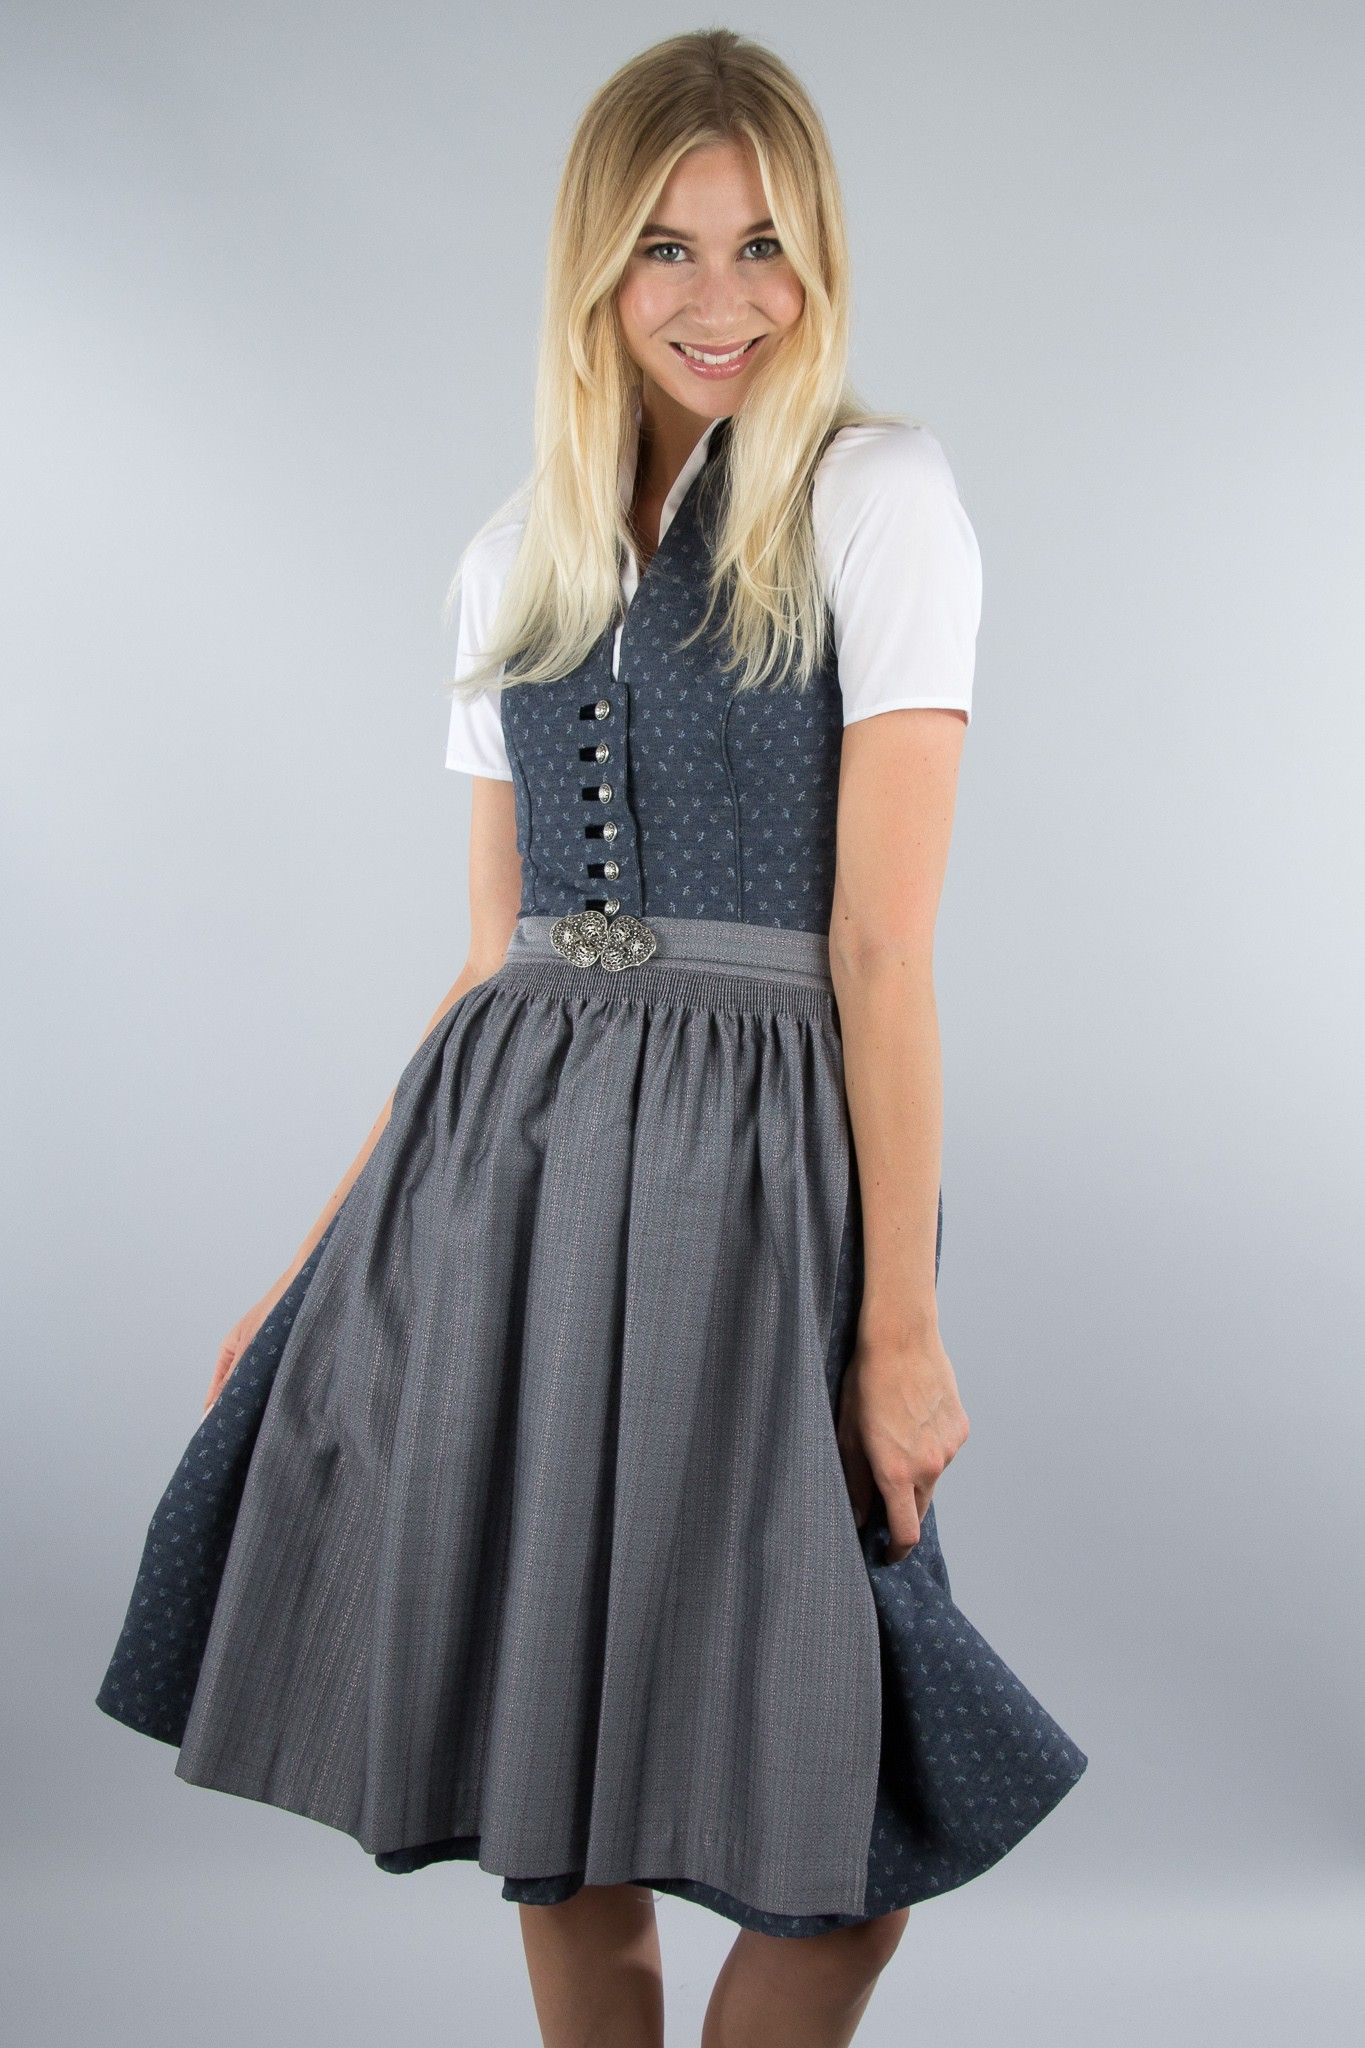 wenger damen dirndl hochgeschlossen lotte 88 blau dirndl pinterest dirndl hochgeschlossen. Black Bedroom Furniture Sets. Home Design Ideas